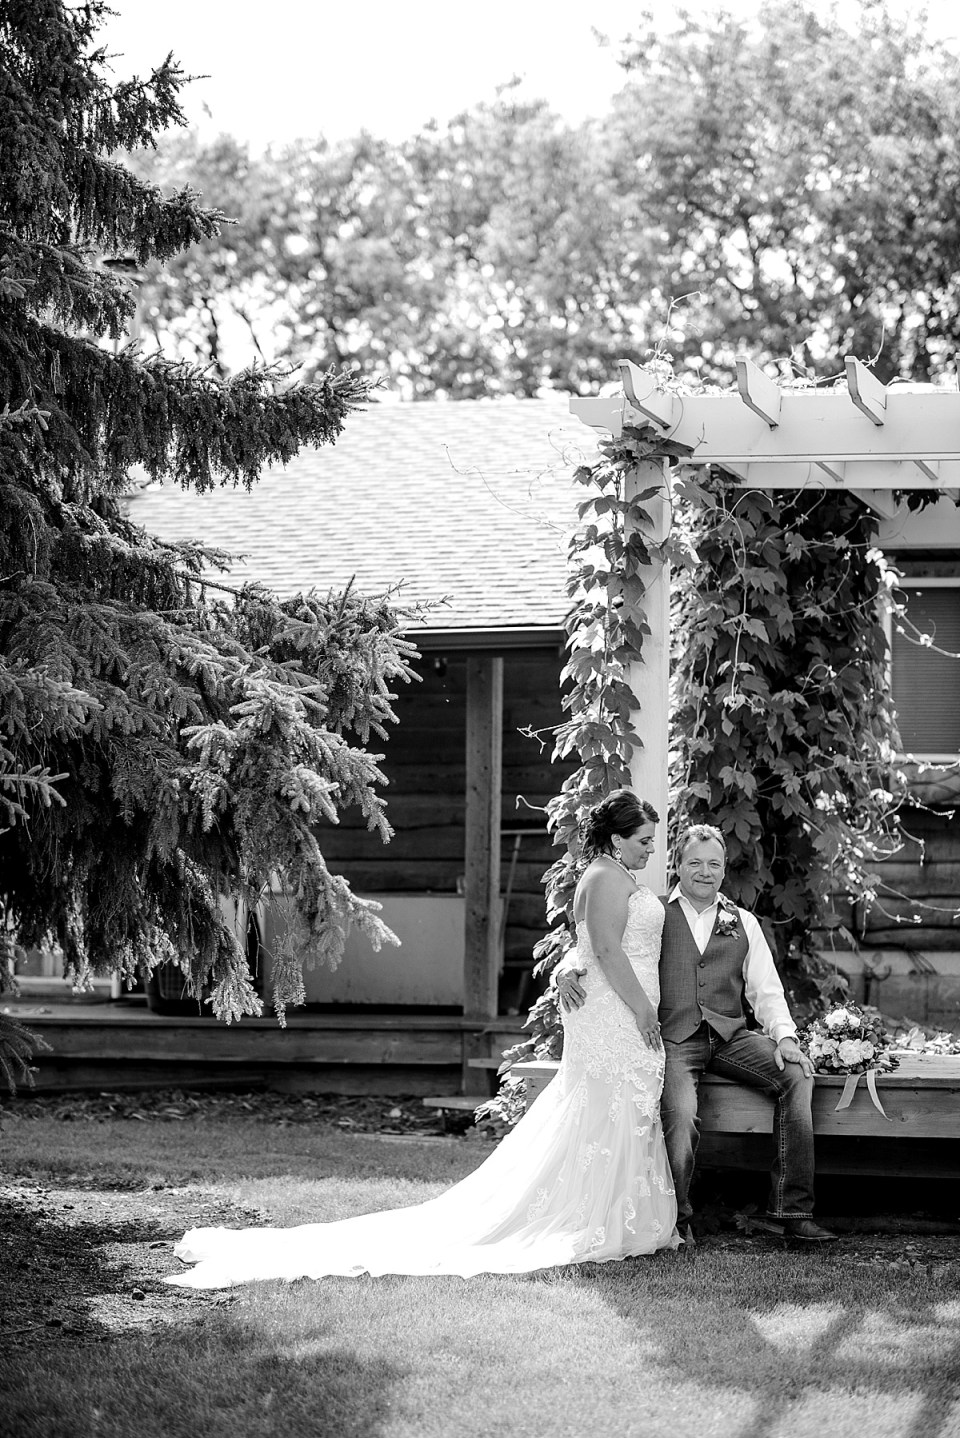 A Wedding at a Country Acreage | Red Deer Photographers | Raelene Schulmeister Photography | Rustic country wedding | Second Wedding | Getting married with grown up children | Blended Family Wedding